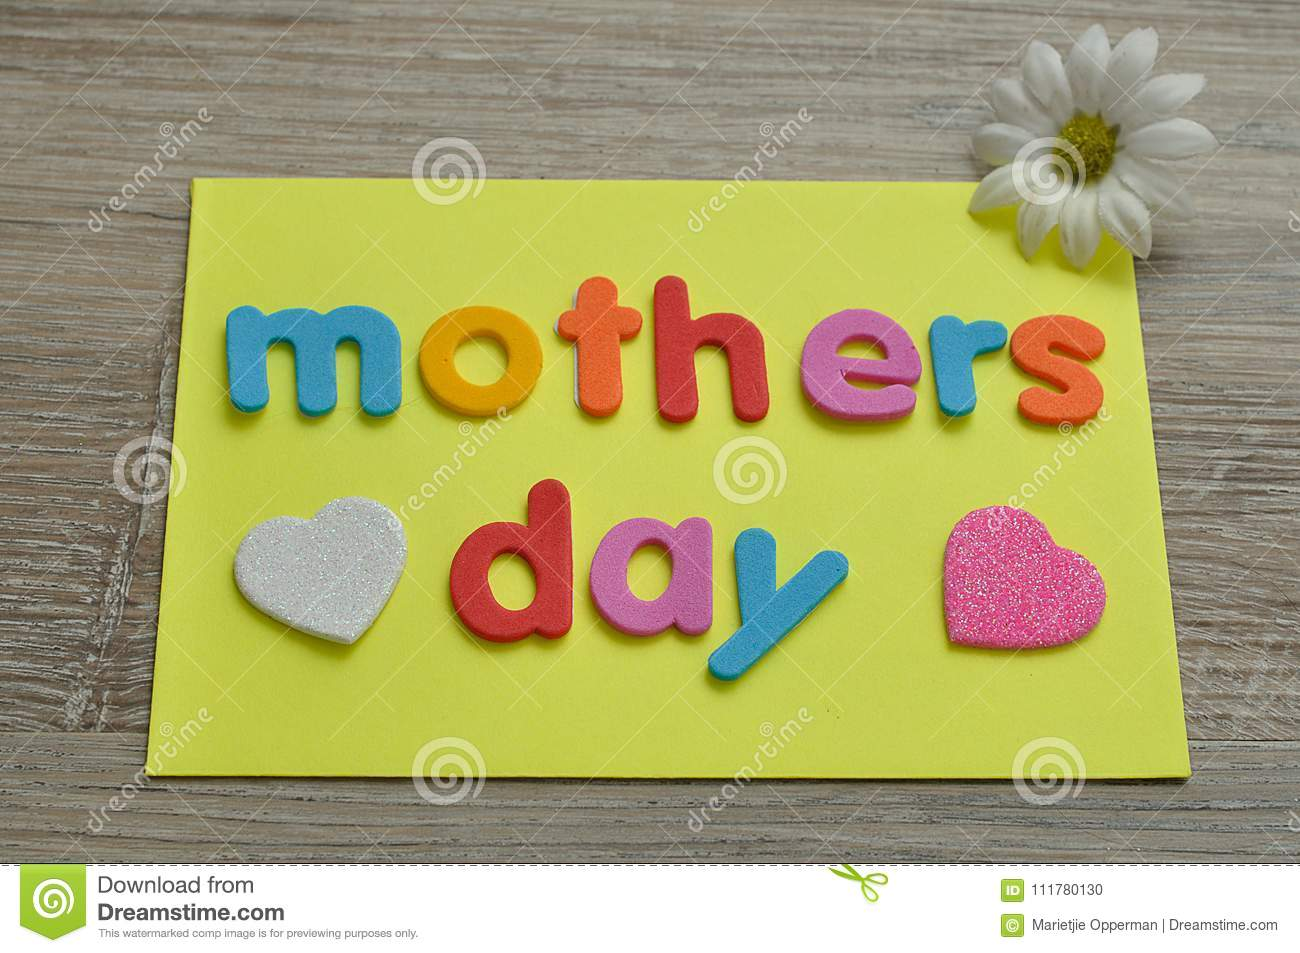 Mothers day on a yellow note with a white and a pink heart and a white daisy